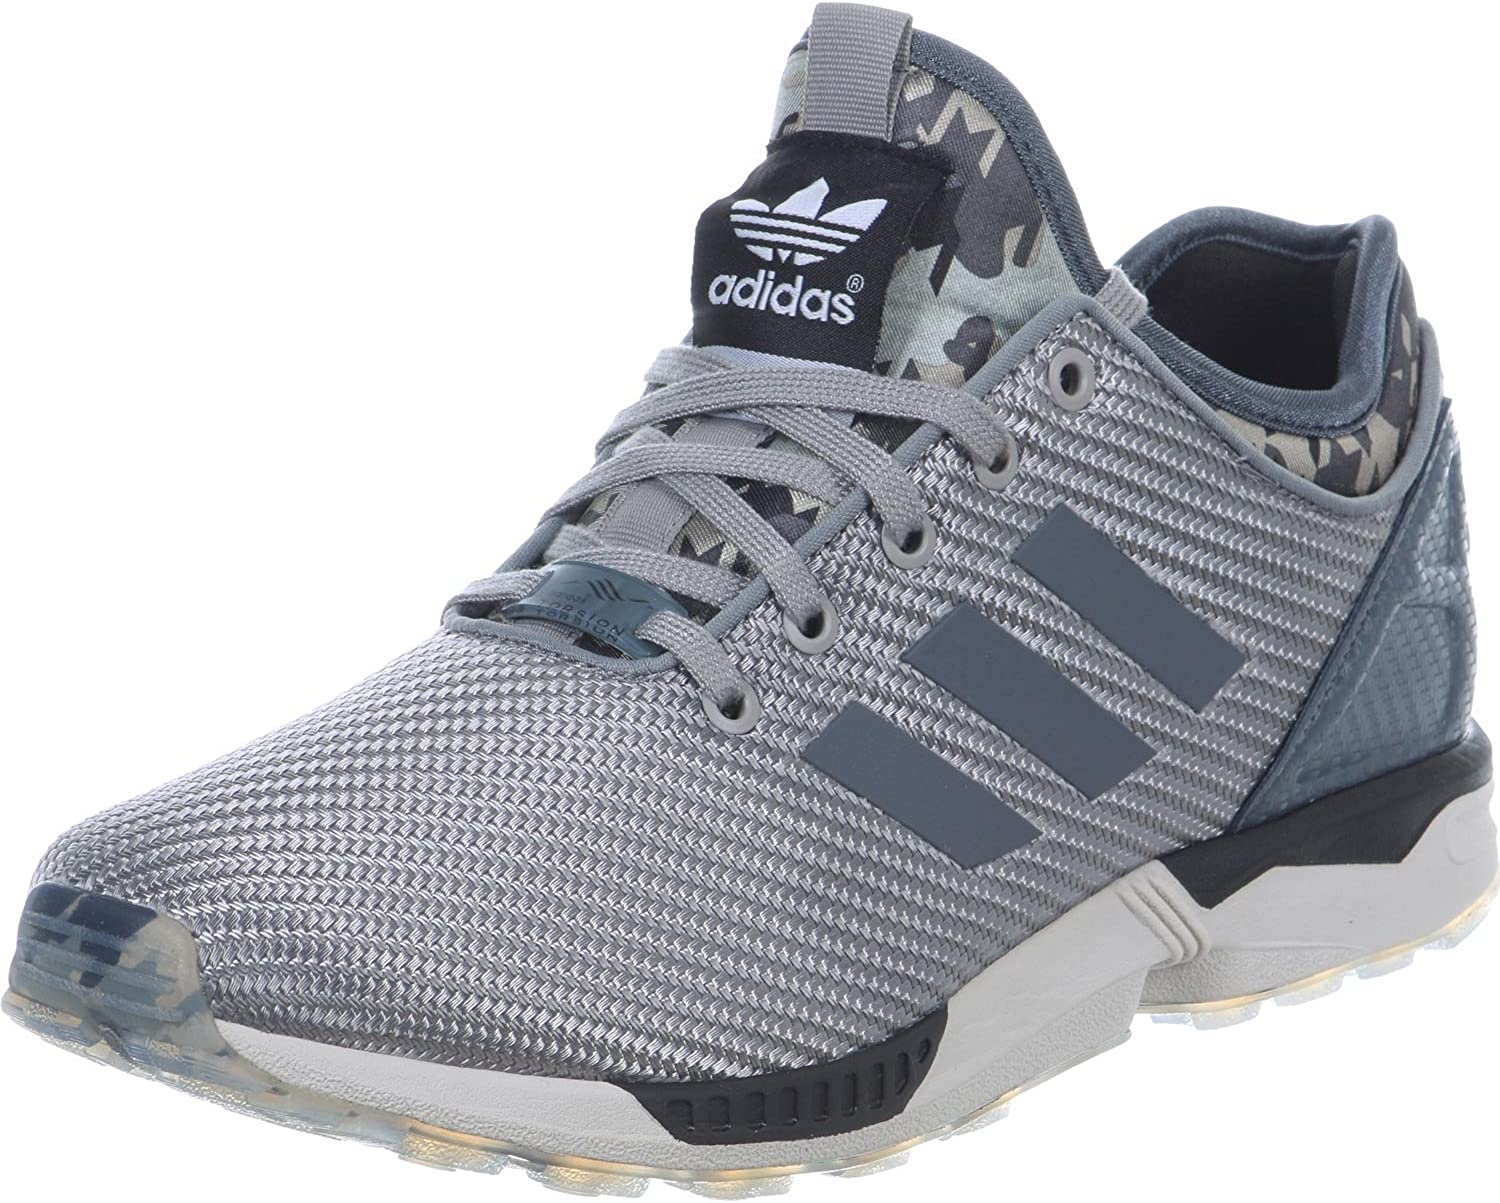 adidas ZX Flux Men's Trainers Grey Size